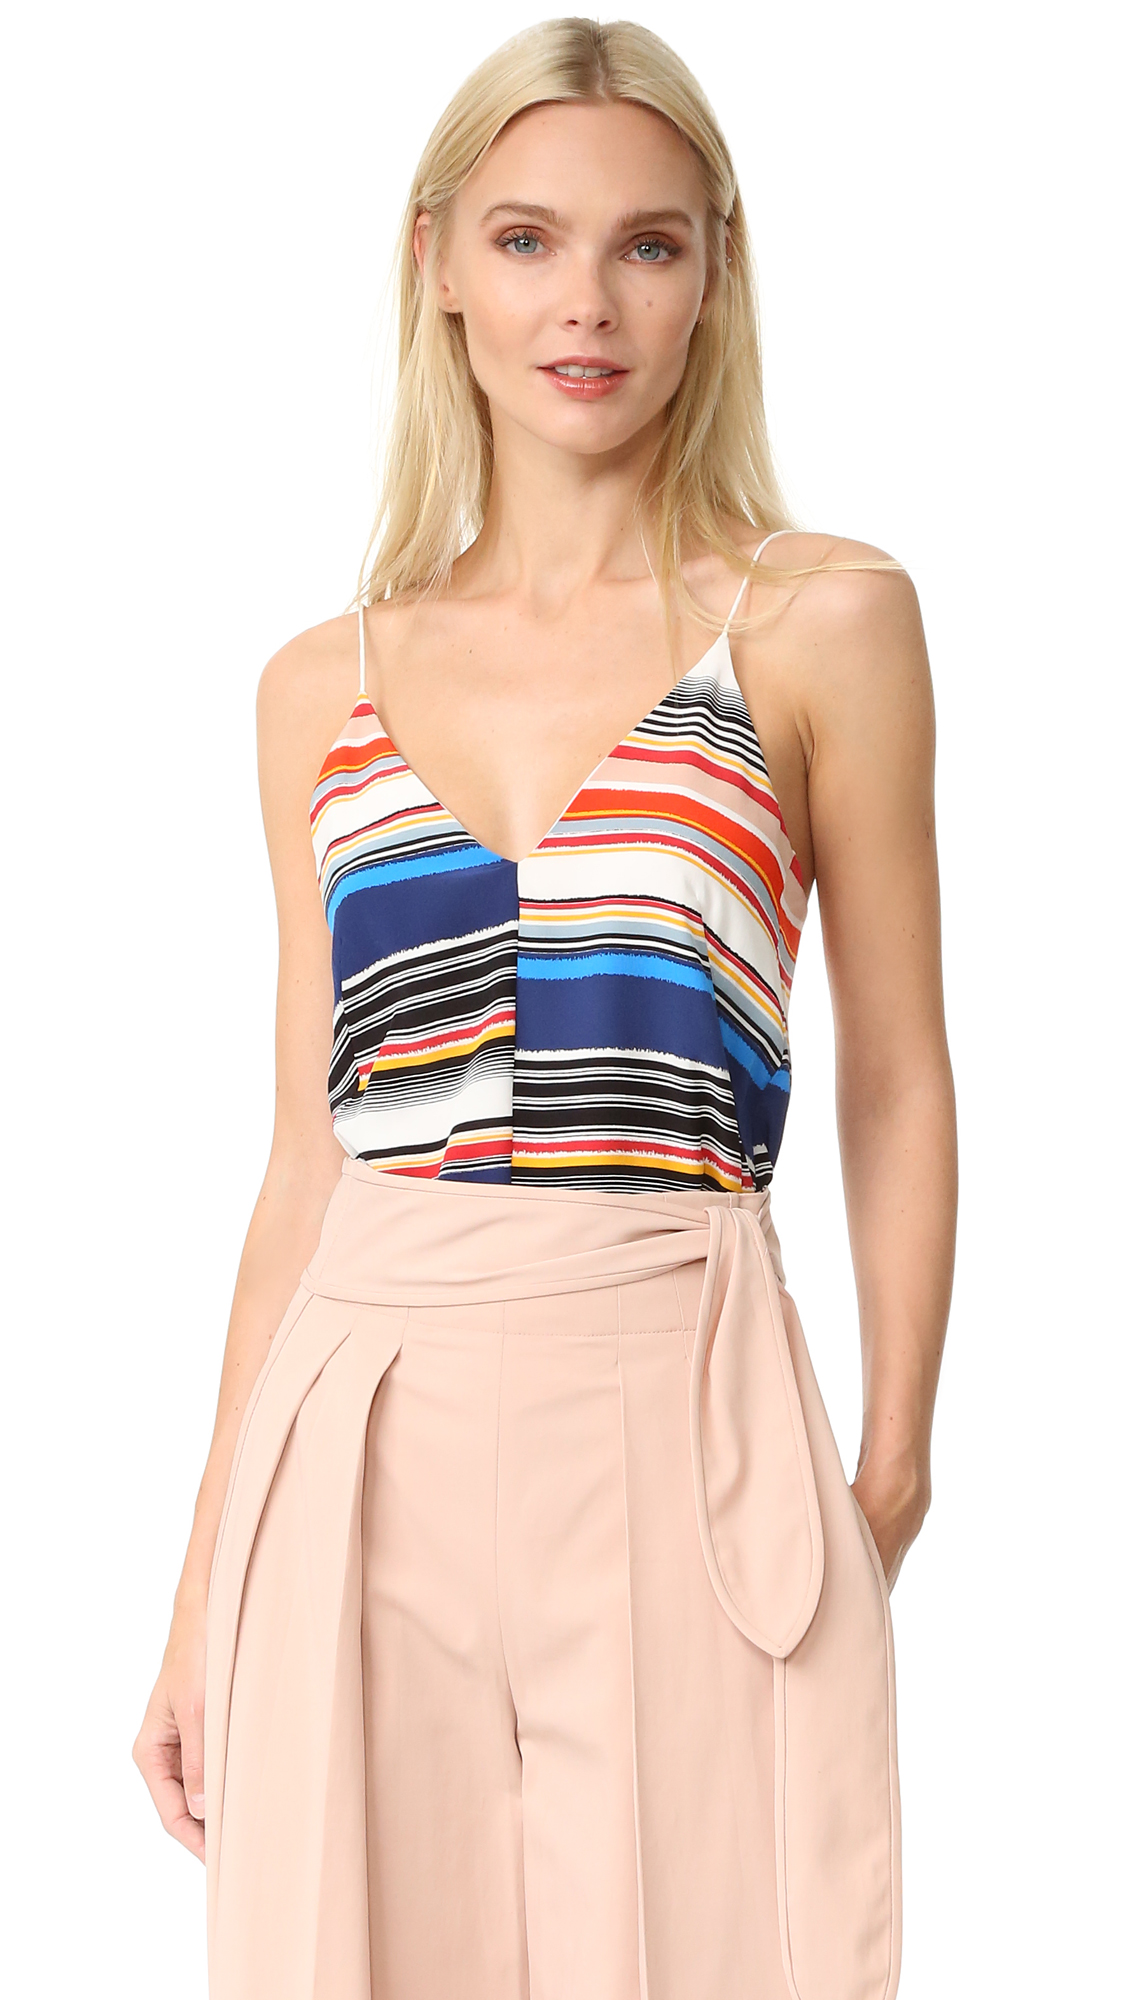 Edun Camisole Top - Multistripe at Shopbop